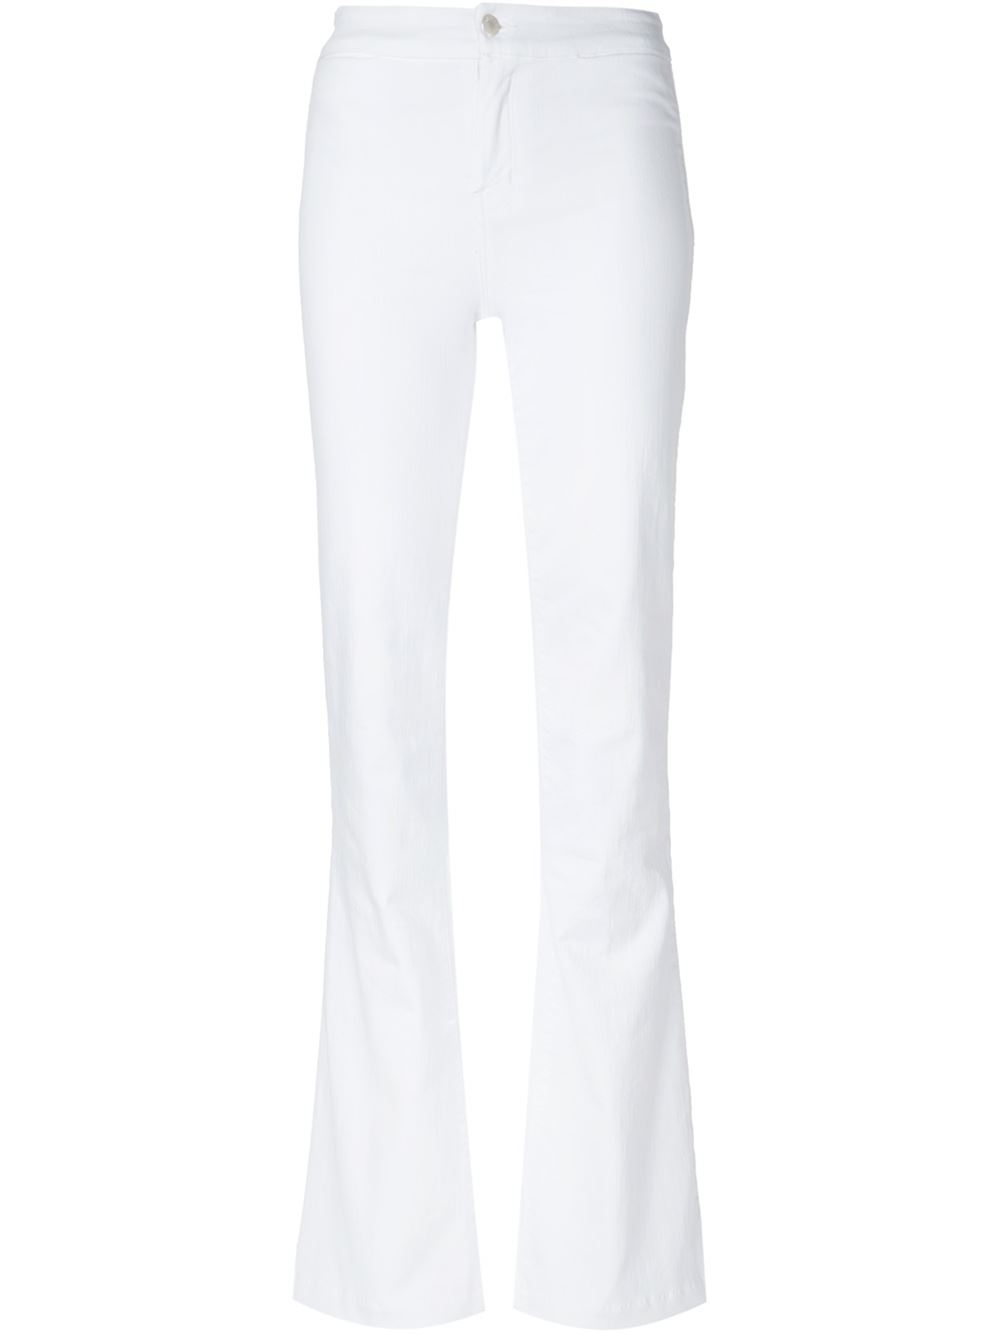 J brand Flared Jeans in White | Lyst